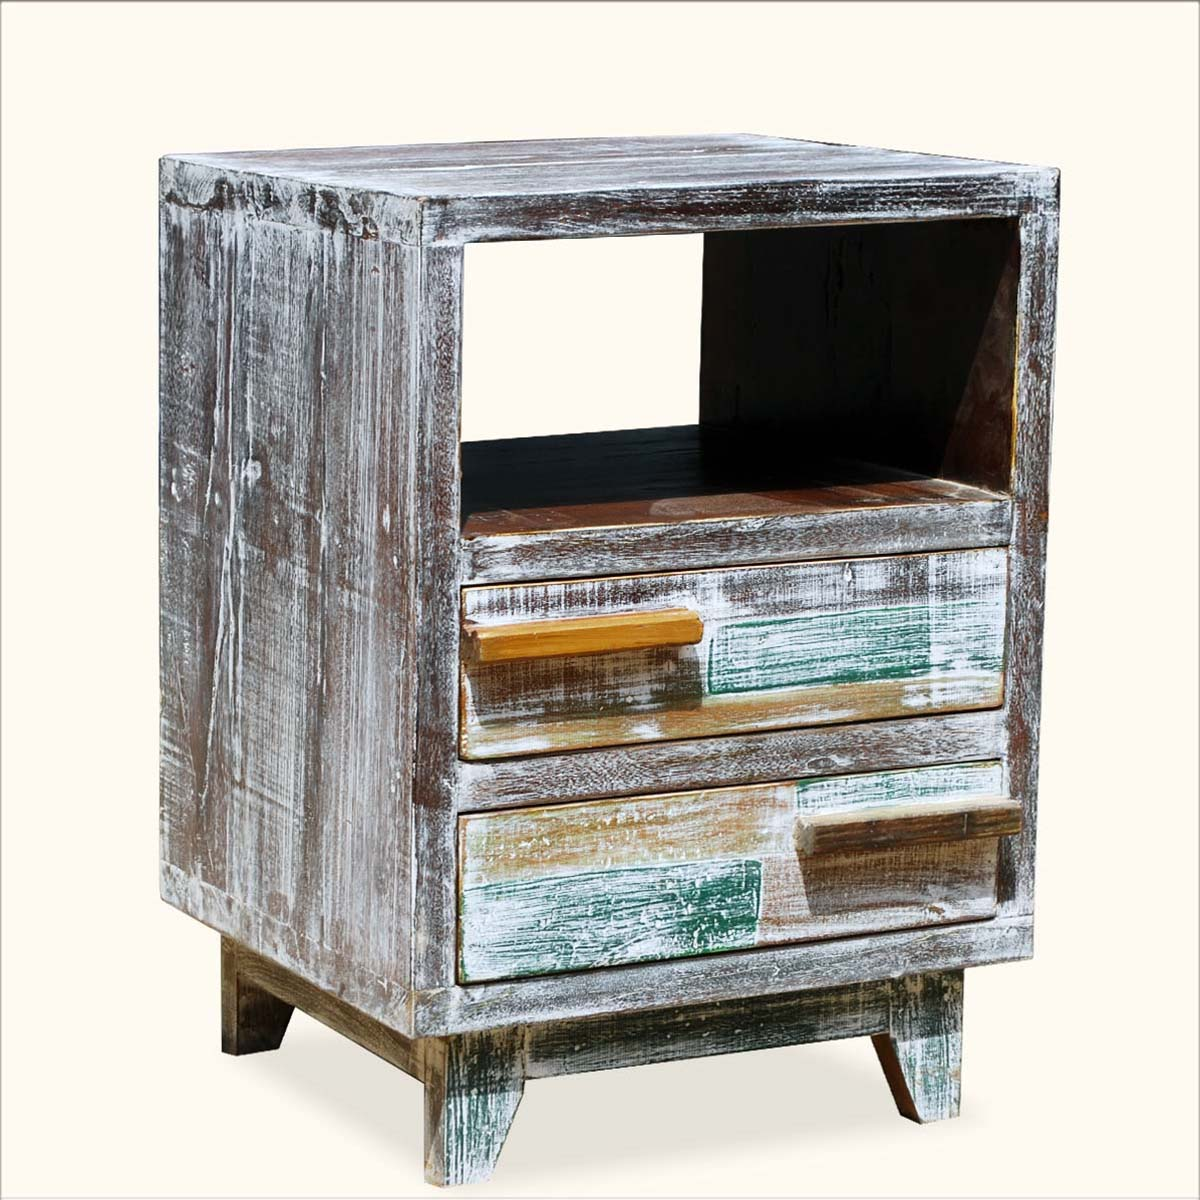 sofa back table the terrific free recycled wood end tables distressed reclaimed with shelf and drawers awesome ideas small rattan ethan allen round glass outdoor library white